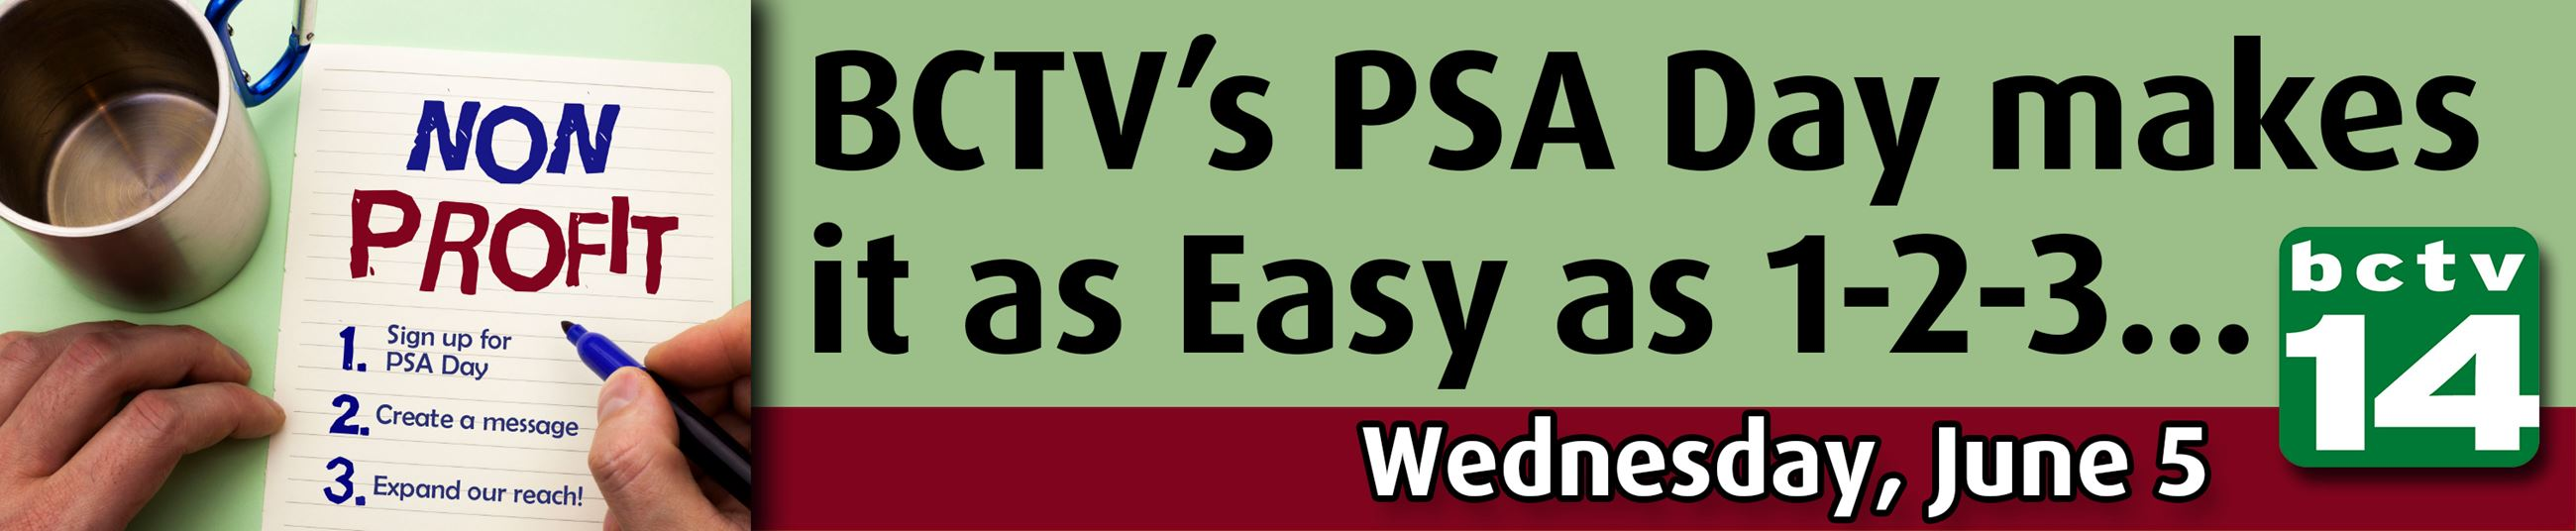 Wednesday, June 5th BCTV non-profit PSA day